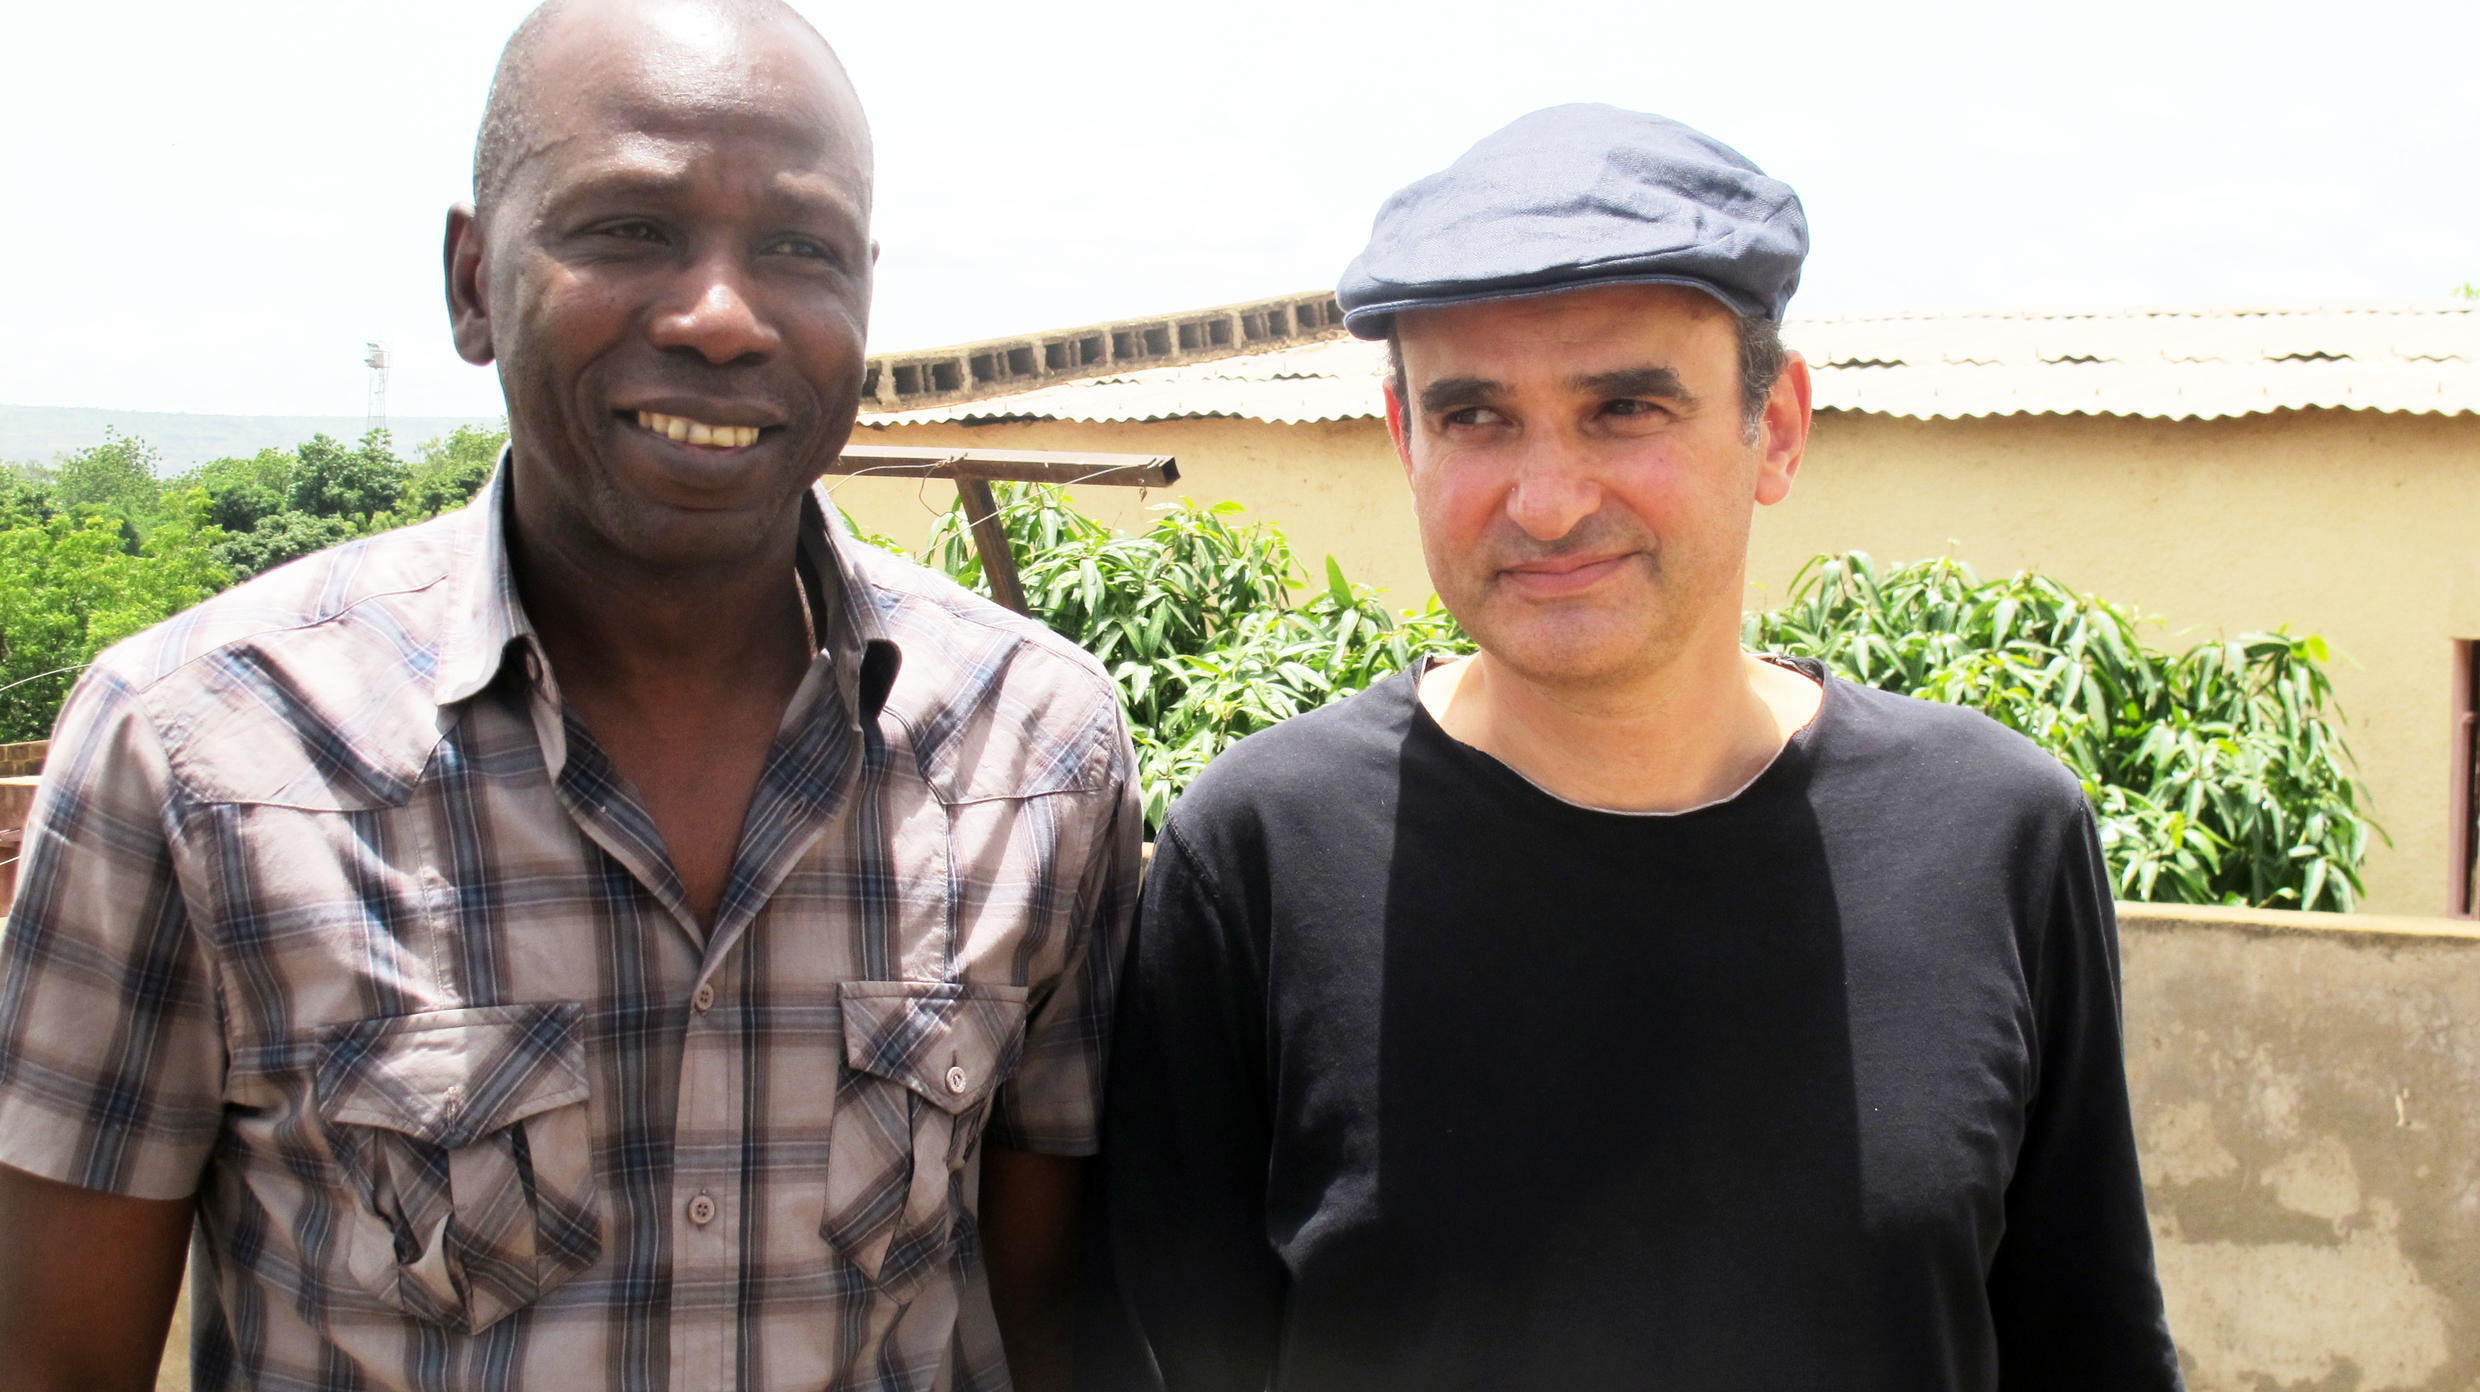 Ballaké Sissoko and Vincent Segal in Bamako, on the roof where they recorded the albumi>Musique de nuit.</i>